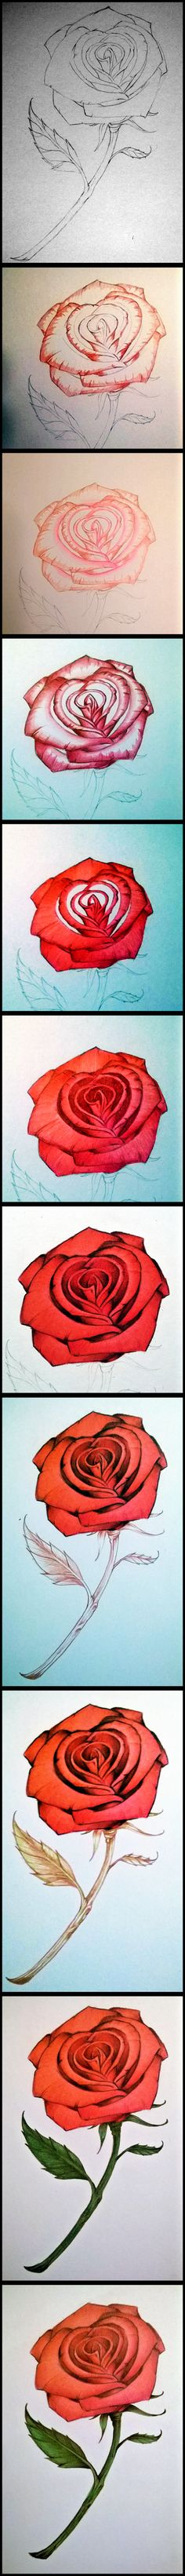 Drawn red rose color Pencils Red drawings with Finish